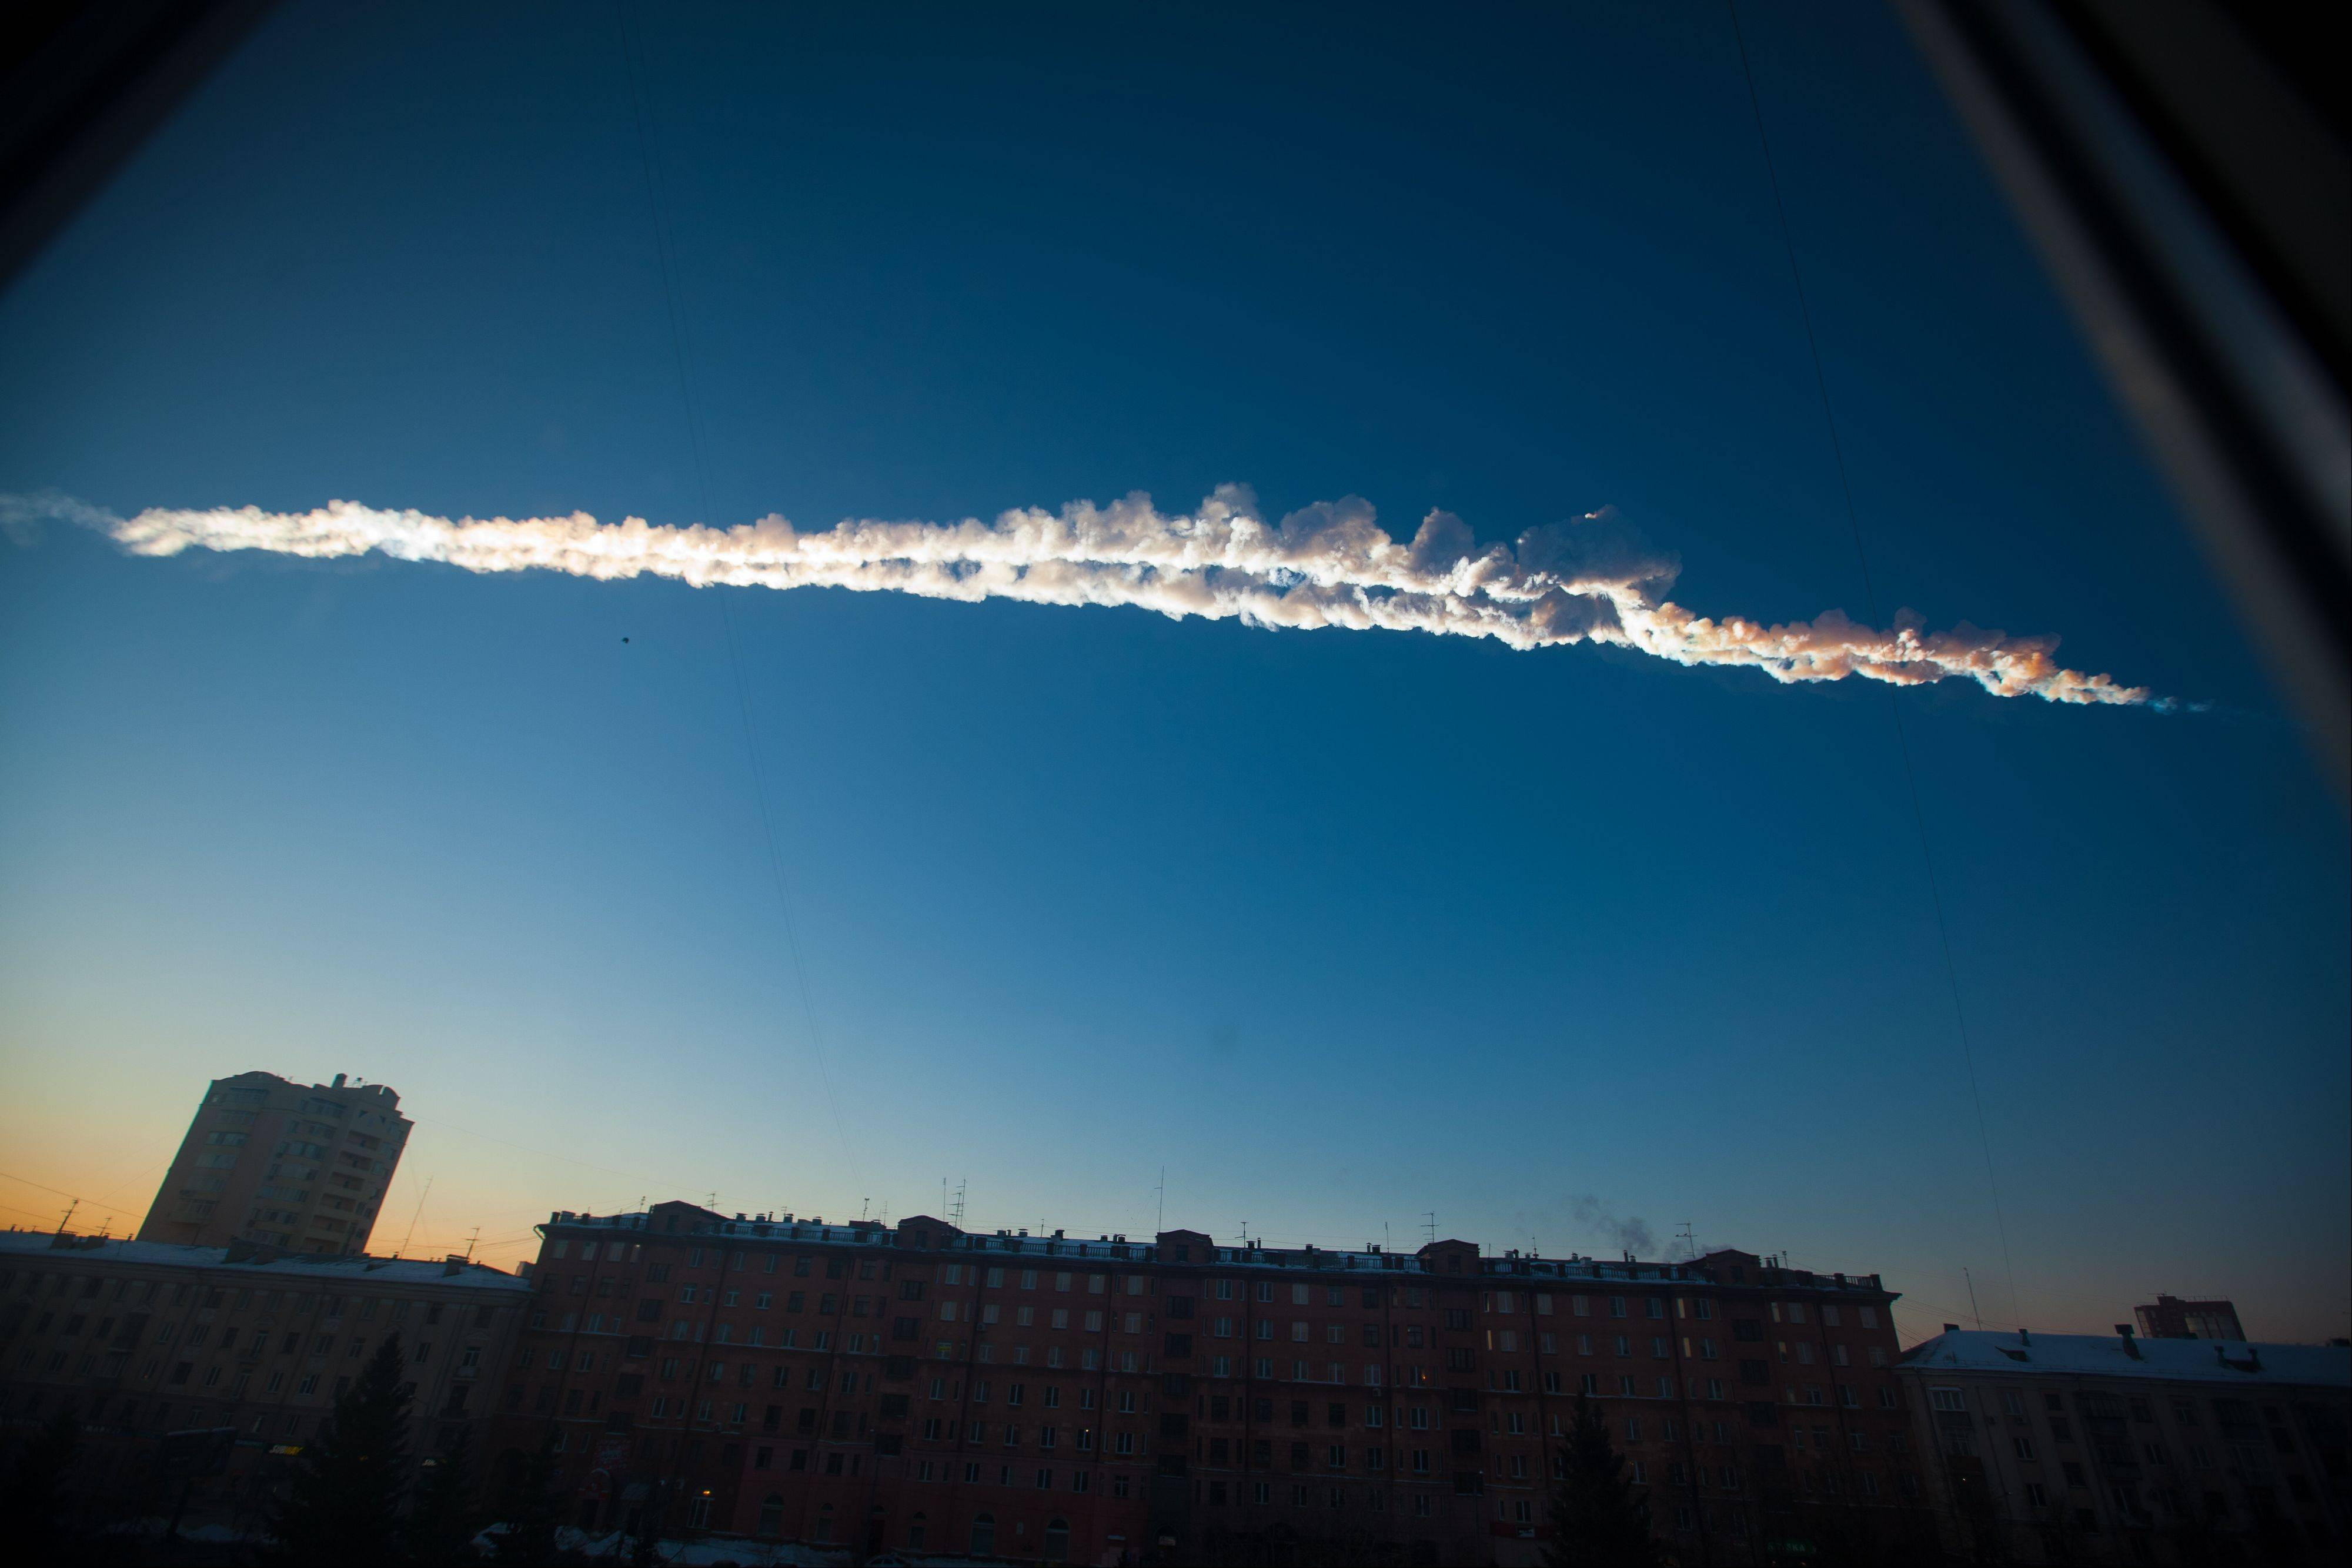 A meteor contrail is seen Friday over Chelyabinsk, Russia. A meteor streaked across the sky of Russia's Ural Mountains on Friday morning, causing sharp explosions and reportedly injuring nearly 1,000 people, including many hurt by broken glass.